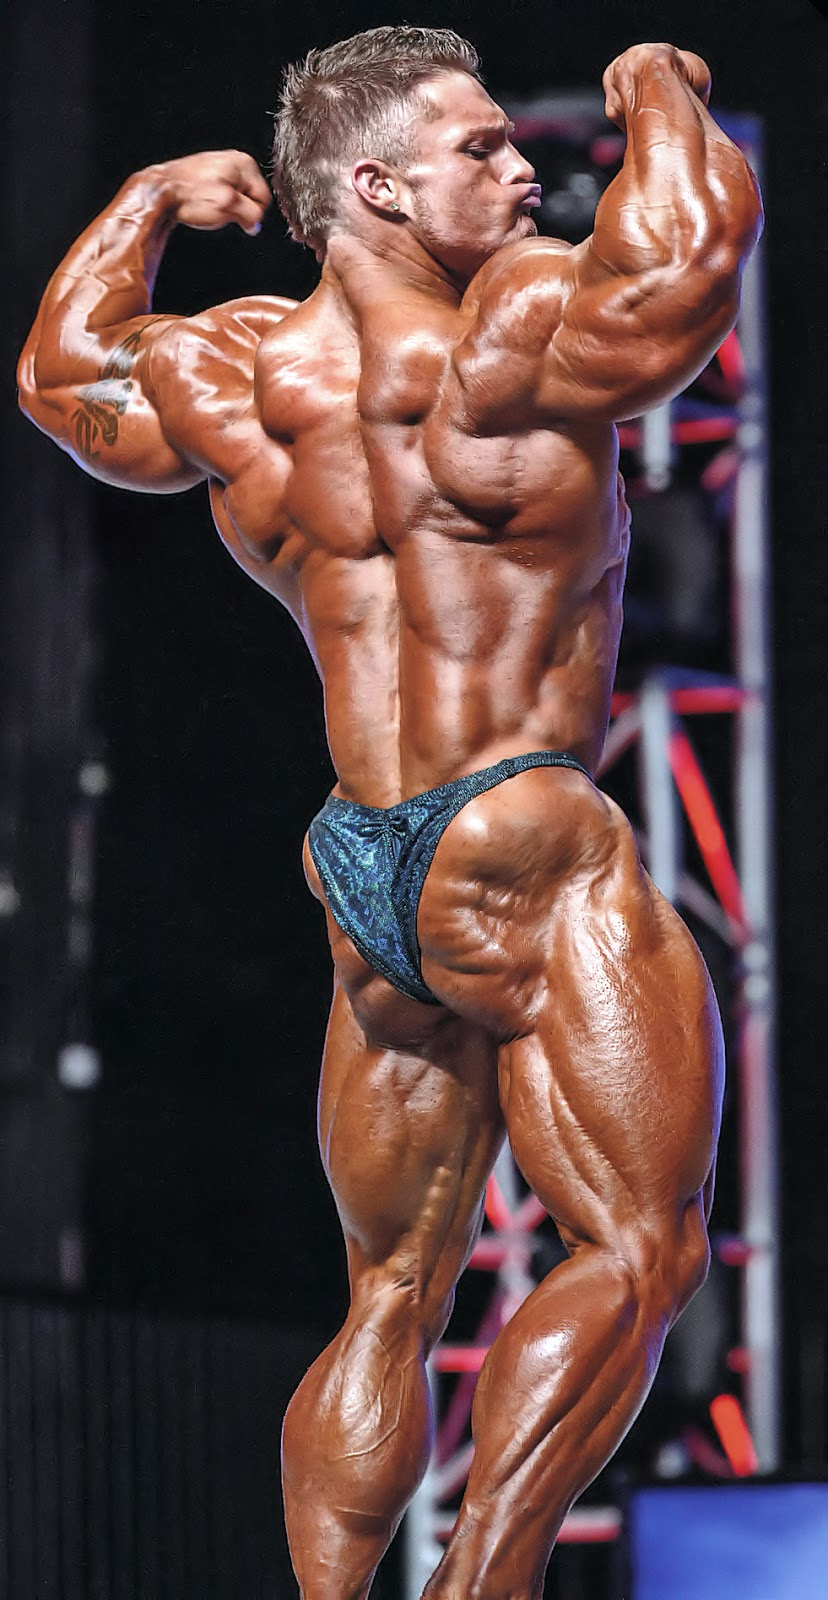 James Flex Lewis performing back double biceps pose while being on a stage